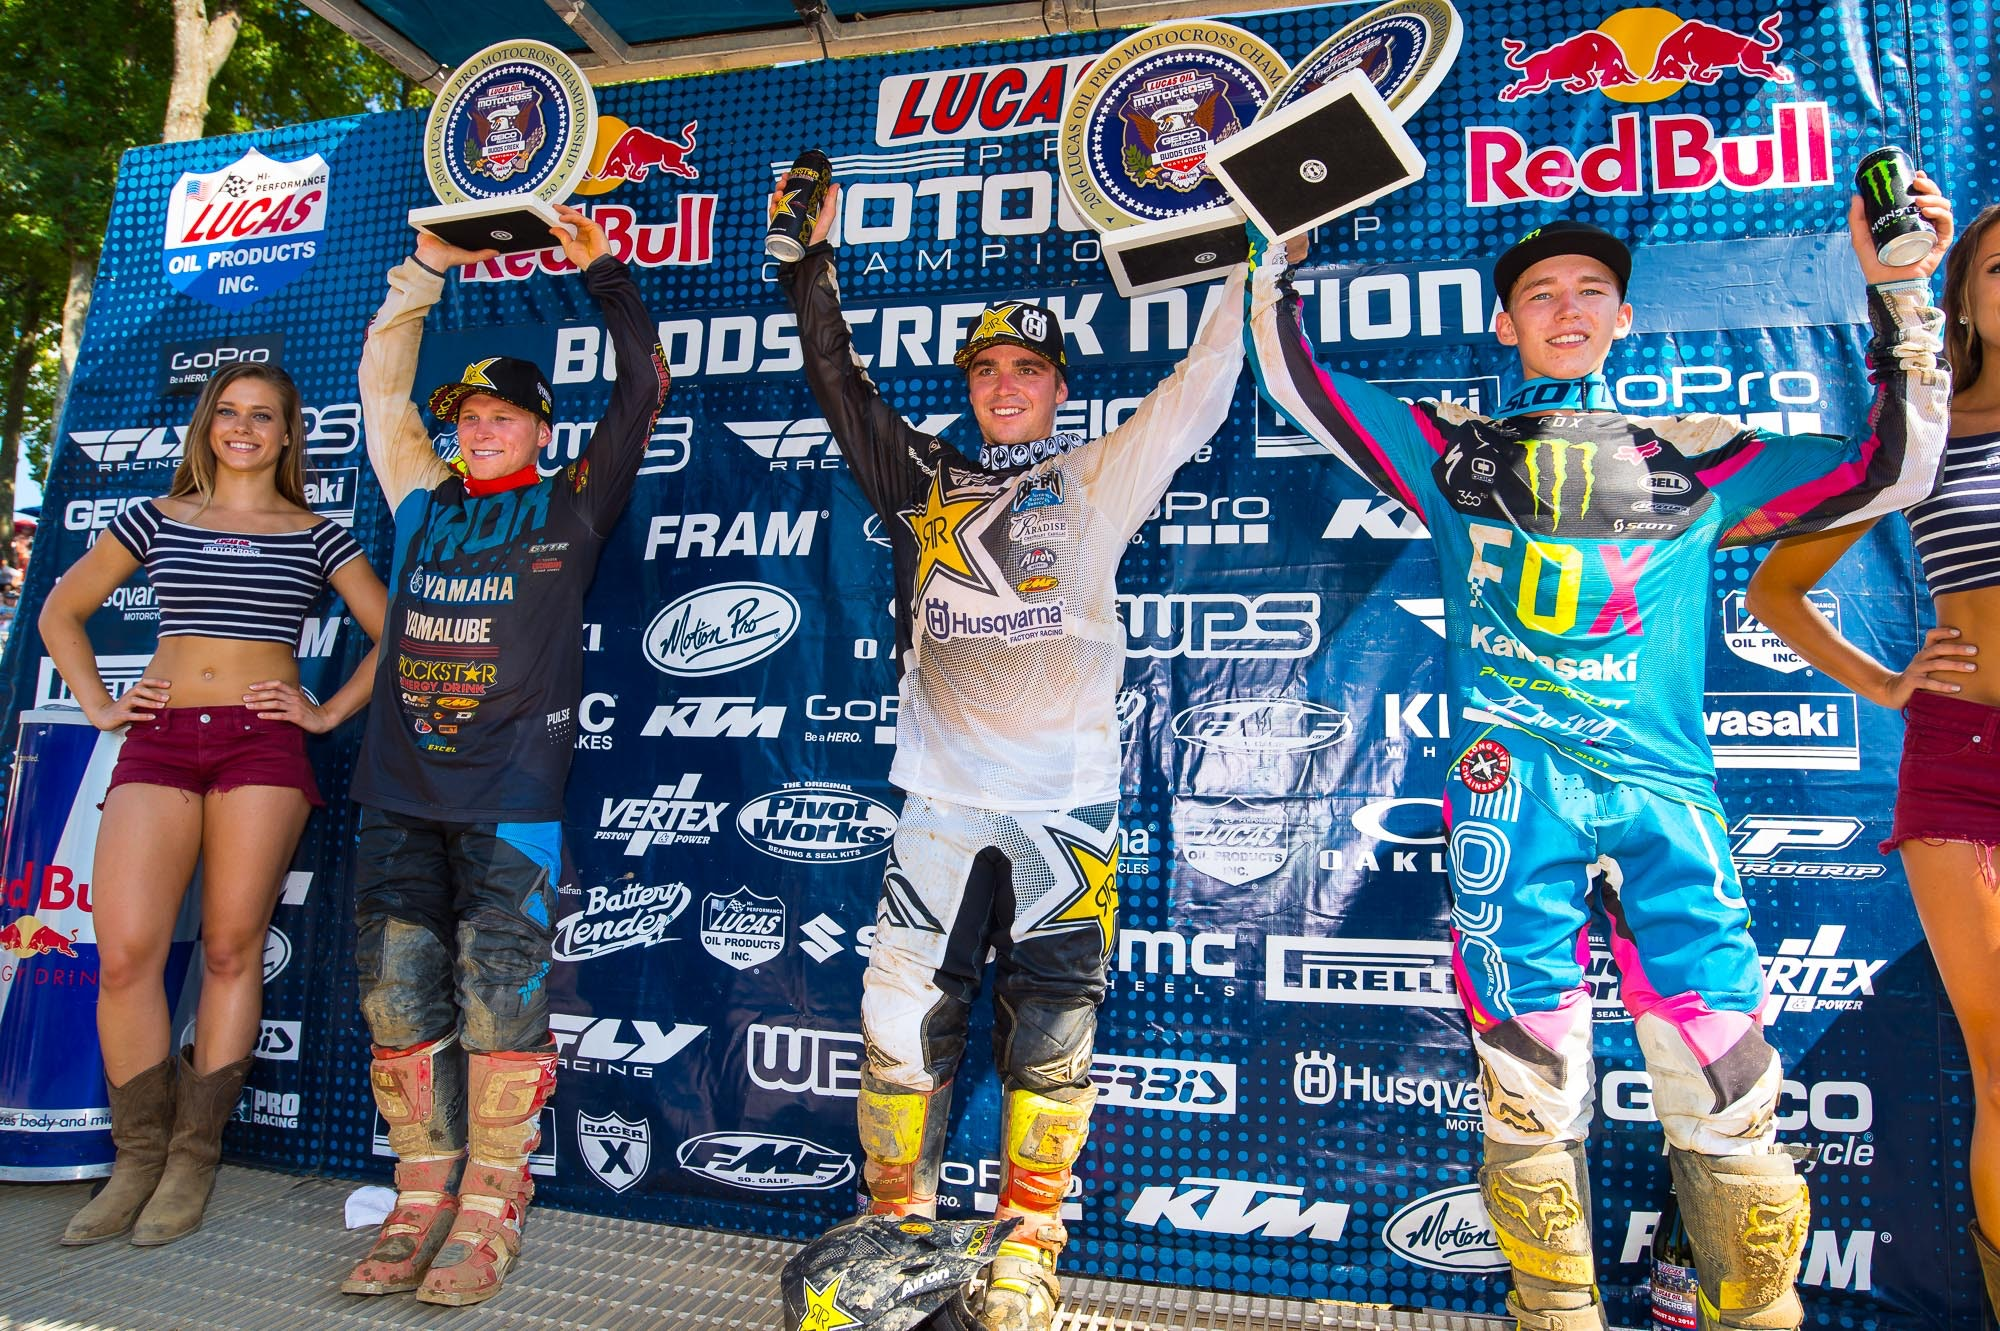 Alex Martin (left) and Austin Forkner (right) rounded out the 250 podium.